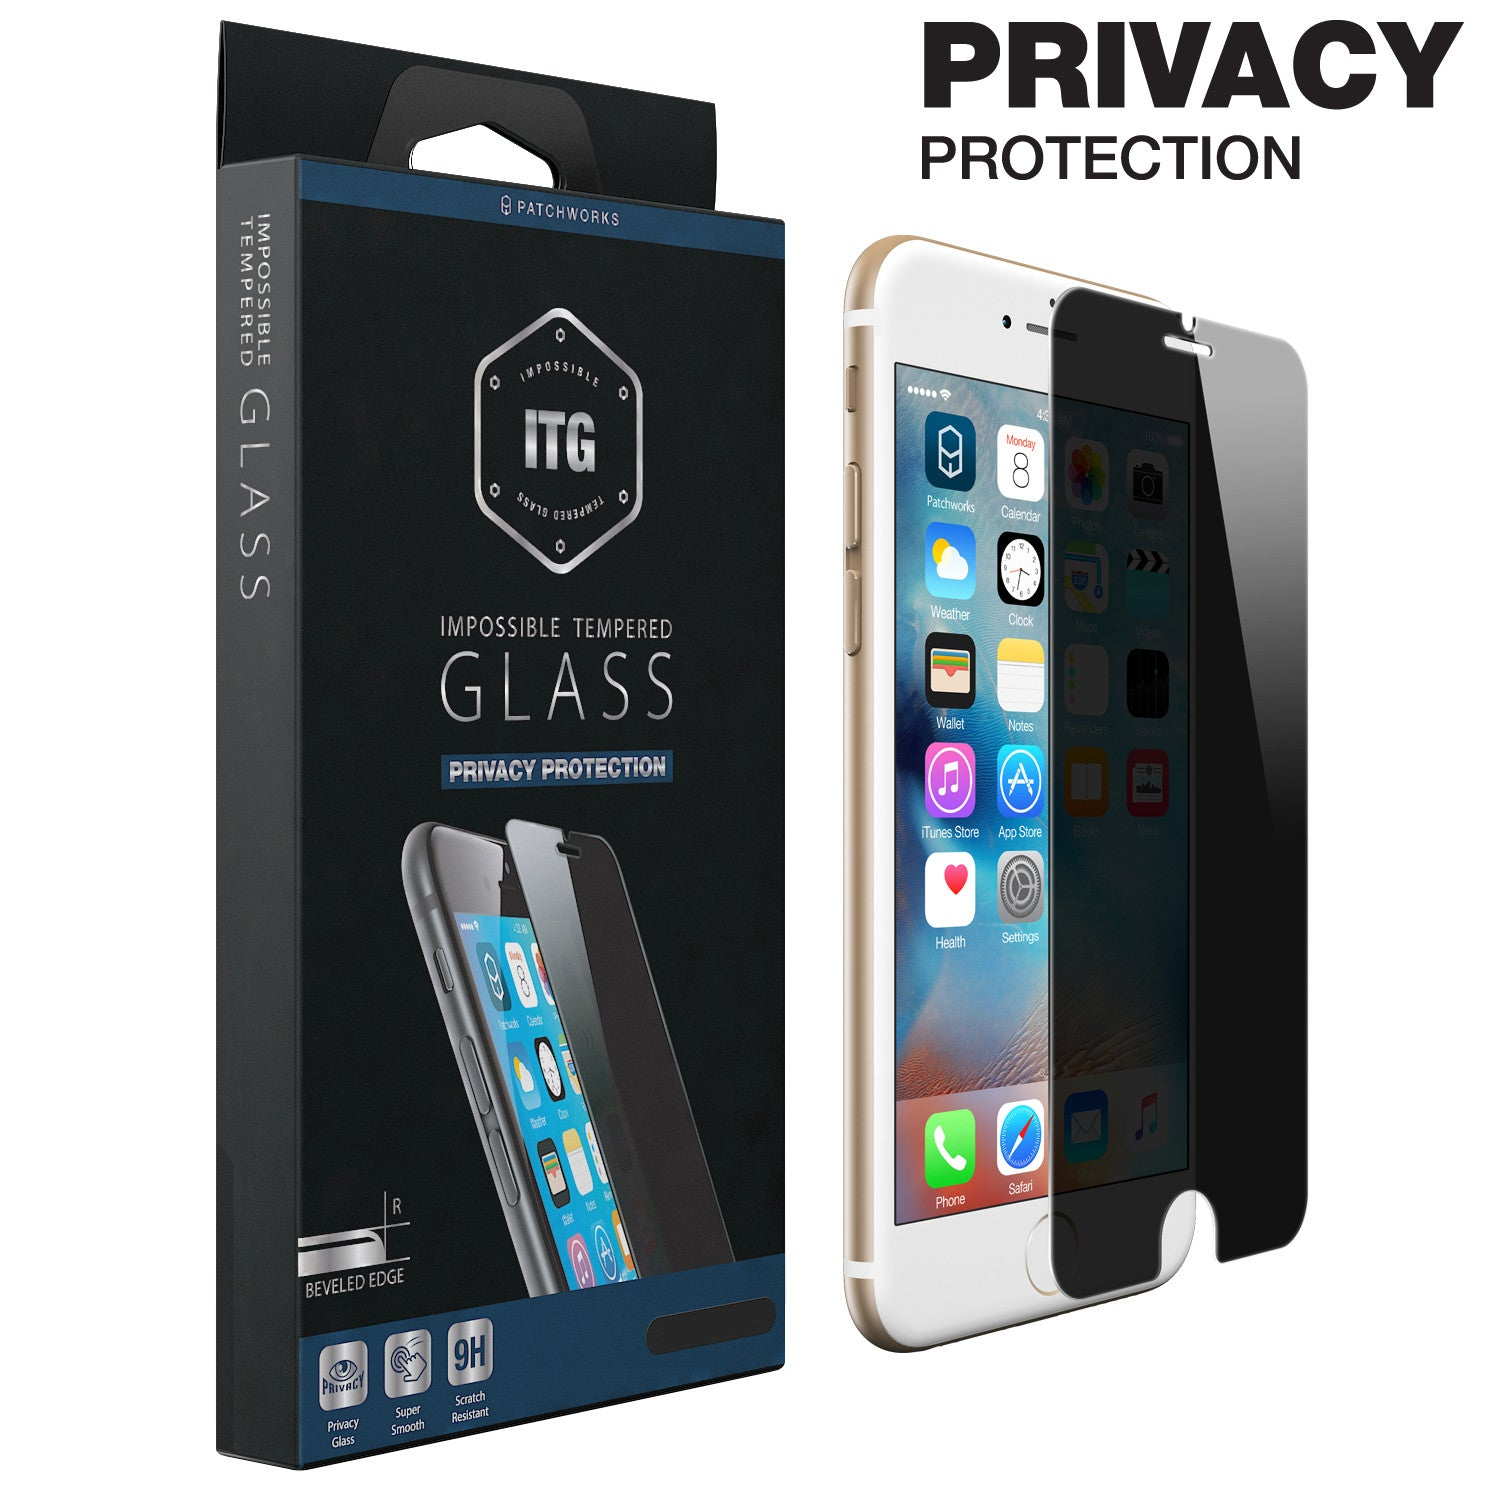 iPhone 6s Plus / 6 Plus Glass Screen Protector ITG PRIVACY - Patchworks Global Inc  - 1